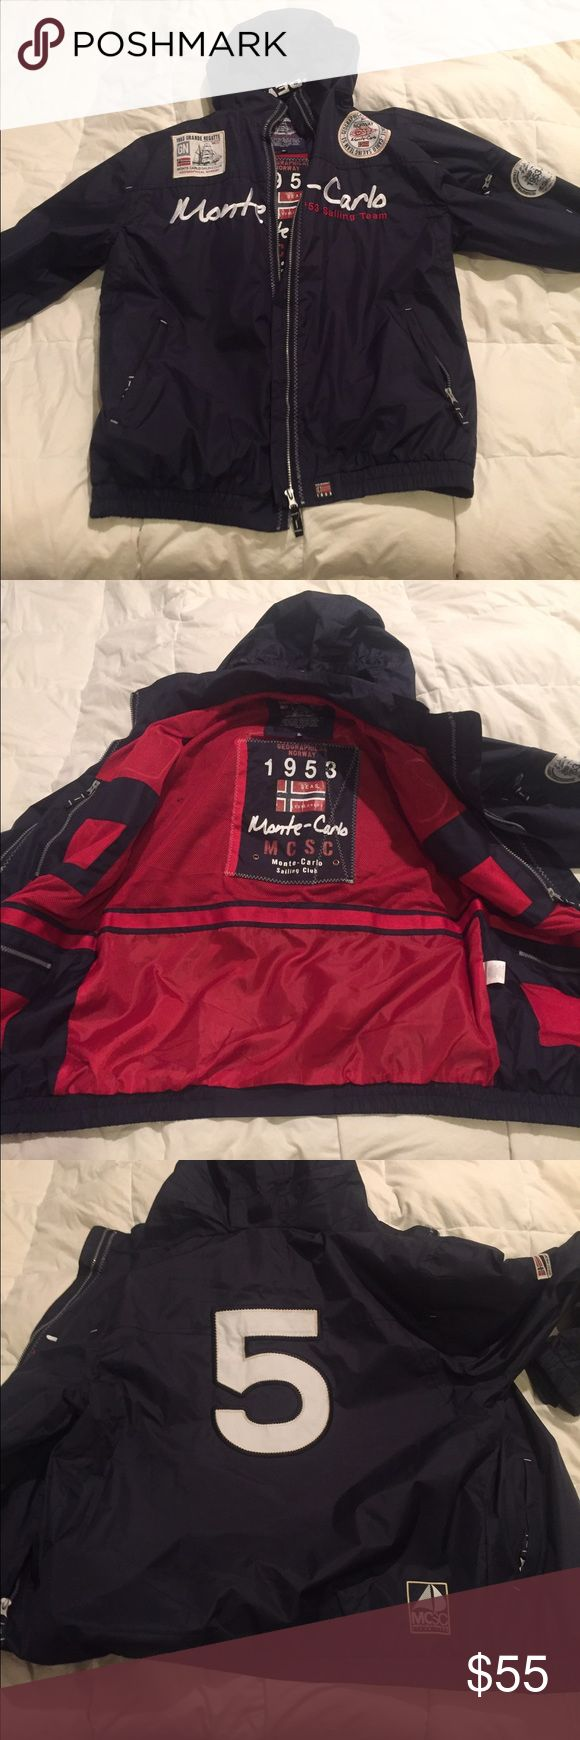 Geographical Norway Sailing Jacket Never worn! ( its an XL but fits like a L) Sailing jacket geographical Norway. Tons of pockets in it. Zip-away hood in the collar. Awesome jacket! geographical norway Jackets & Coats